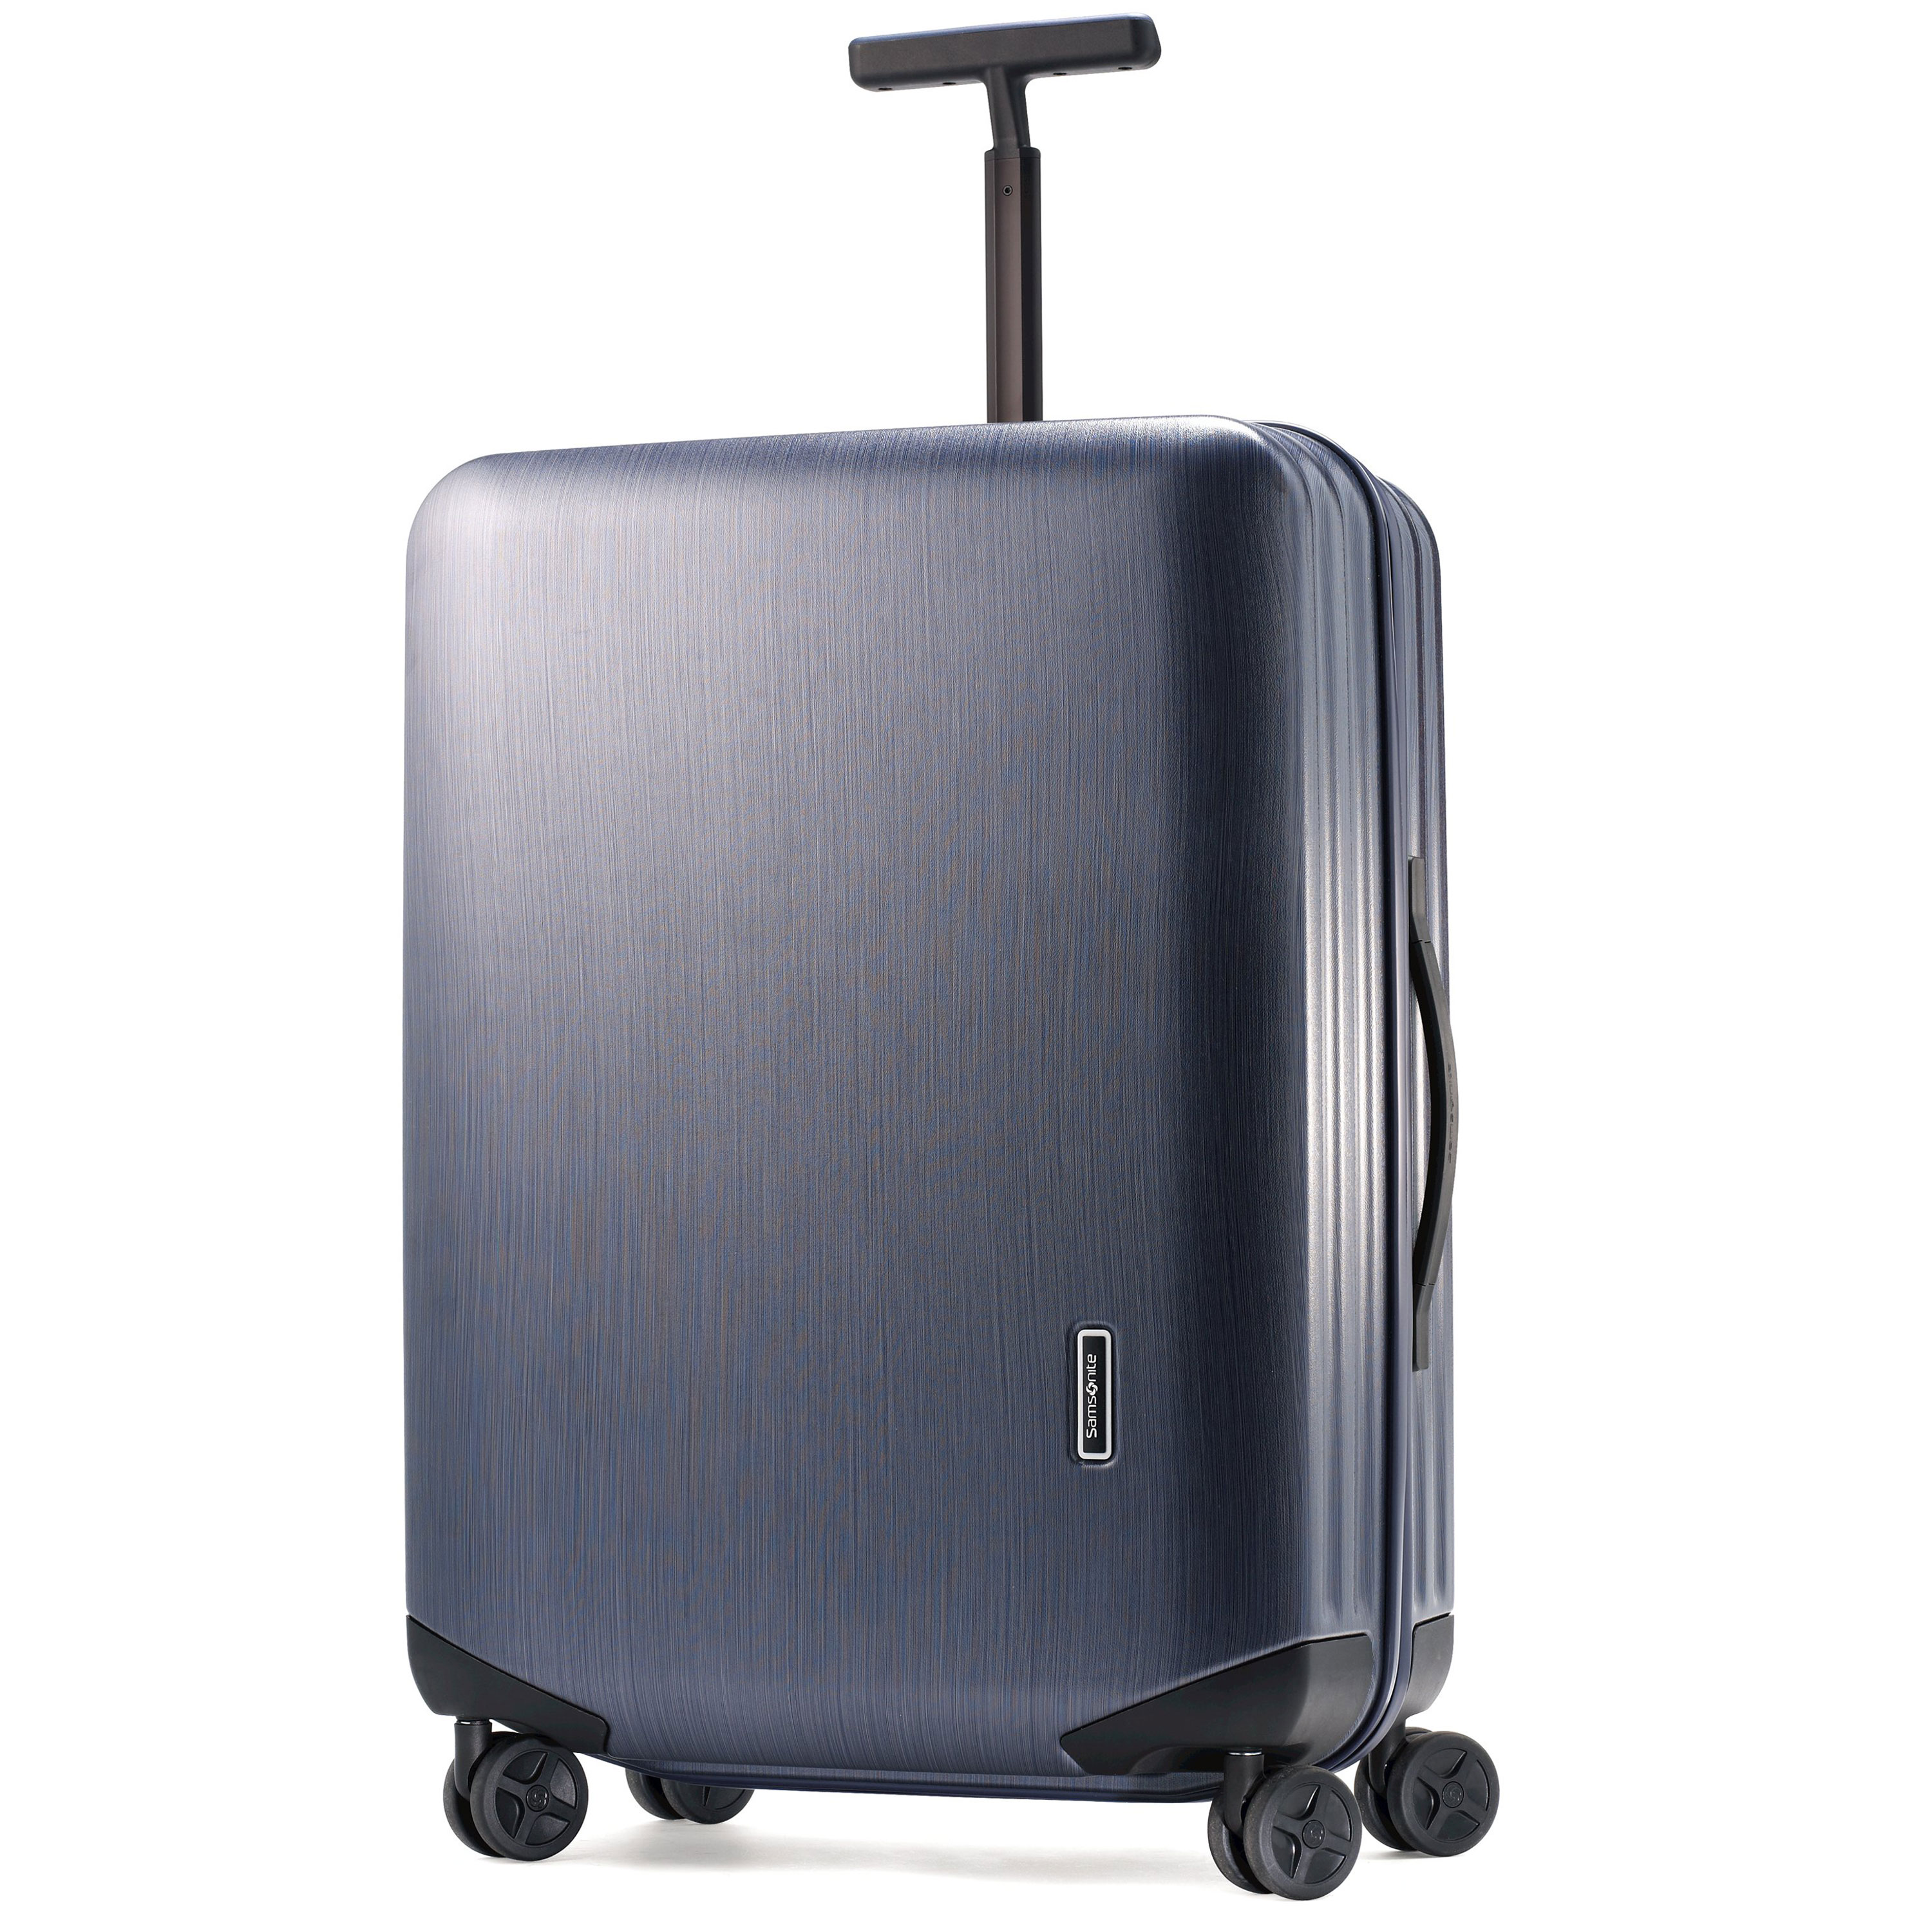 "Discover Samsonite's lightest polycarbonate collection. Inova combines a straightforward, efficient and clean design with outstanding performance. Made of 100% Makrolon polycarbonate, a high-tech material designed for reliability and high impact resistance. The textured shell brushed finish reduces the visibility of scratches. Four easy glide double wheels provide 360 degree easy-pivot mobility. Functional interior with lined divider and cross straps to keep clothes neatly pressed in transit. Flat handles maximize baggage allowances. Integrated three-digit TSA lock for peace of mind. 10 Year Warranty. Weight: 11.44 lbs. Body Dimensions: 30.0"" x 21.25"" x 12.0""Overall Dimensions: 32.0"" x 22.25"" x 13.0"""